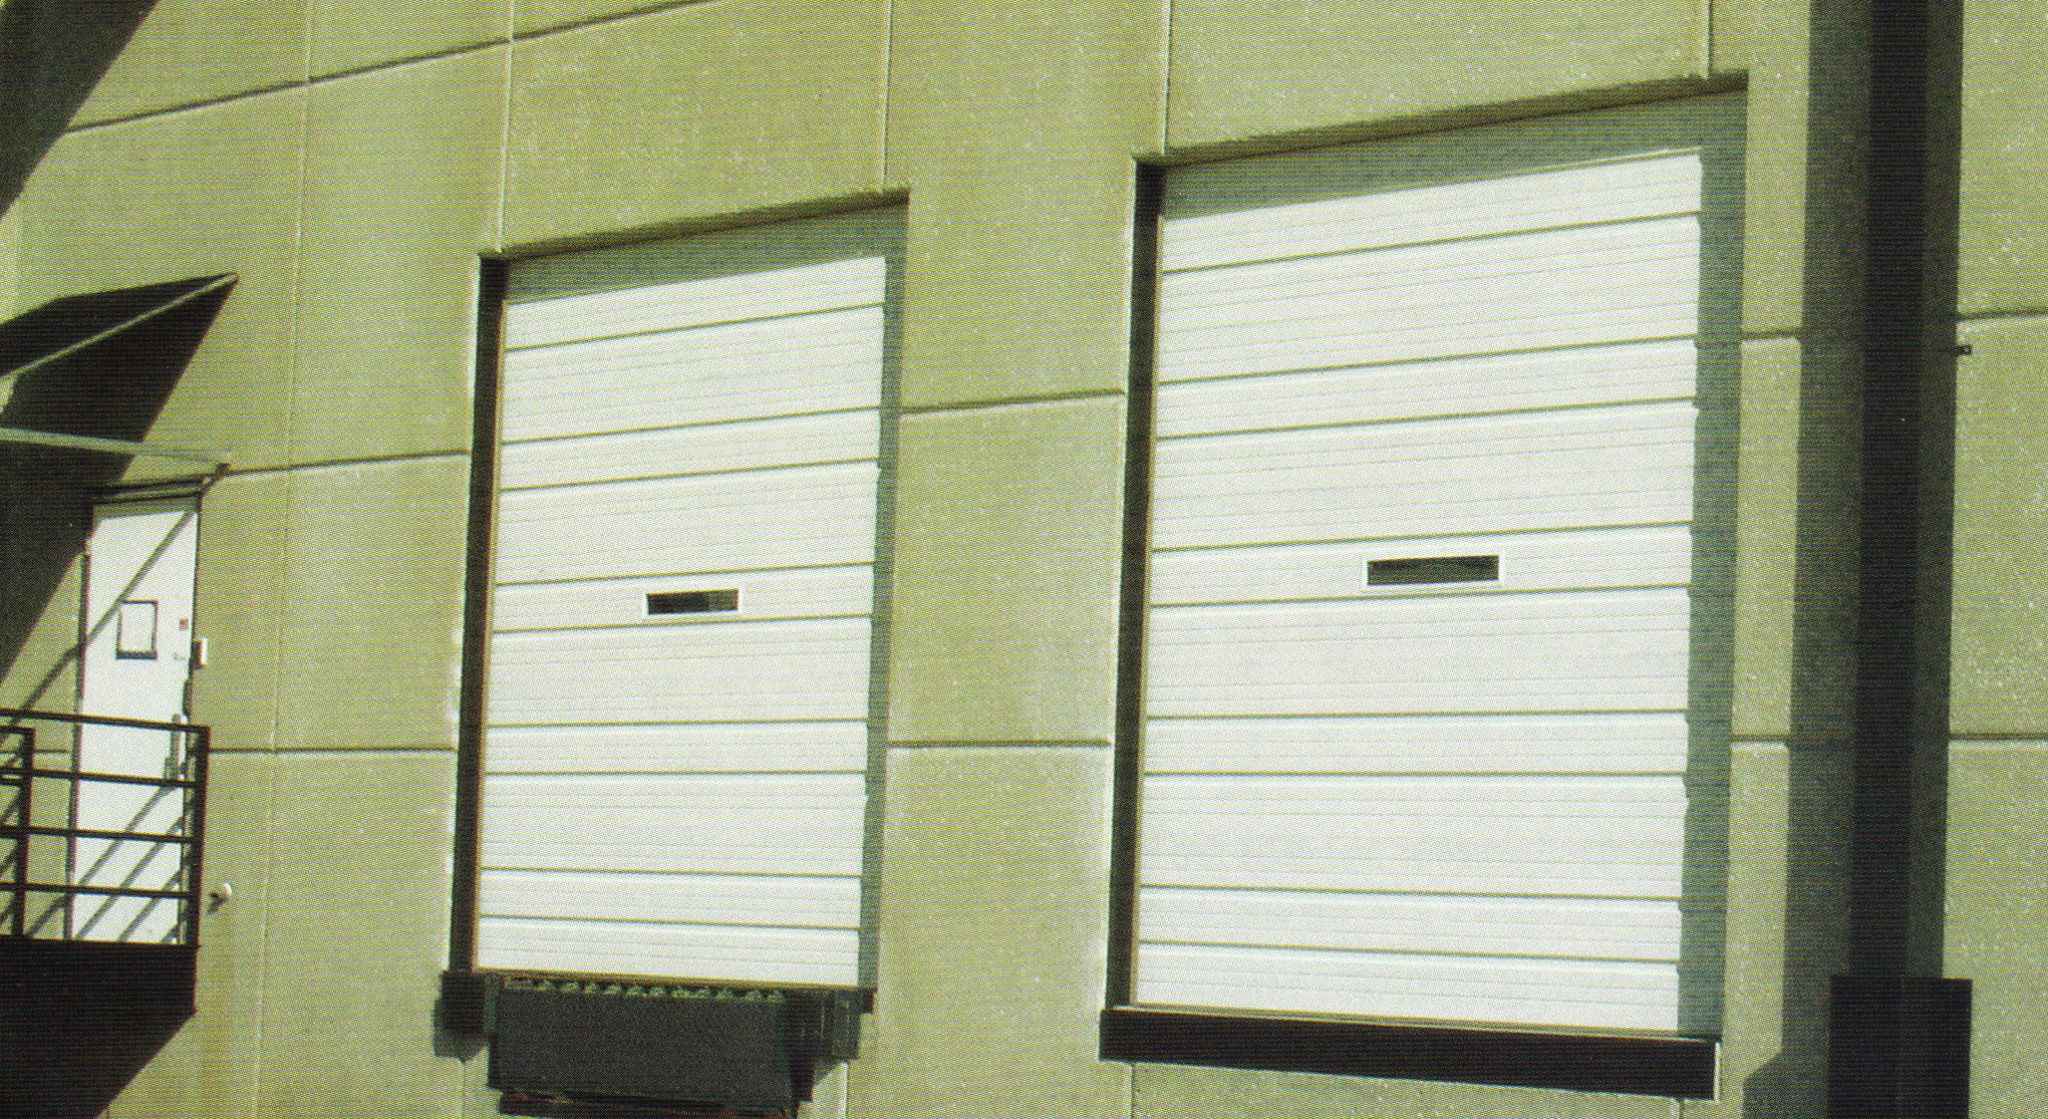 1123 #78804B  Industrial Sectional Steel Bay Garage Door A Plus Garage Doors pic Sectional Steel Garage Doors 35912055